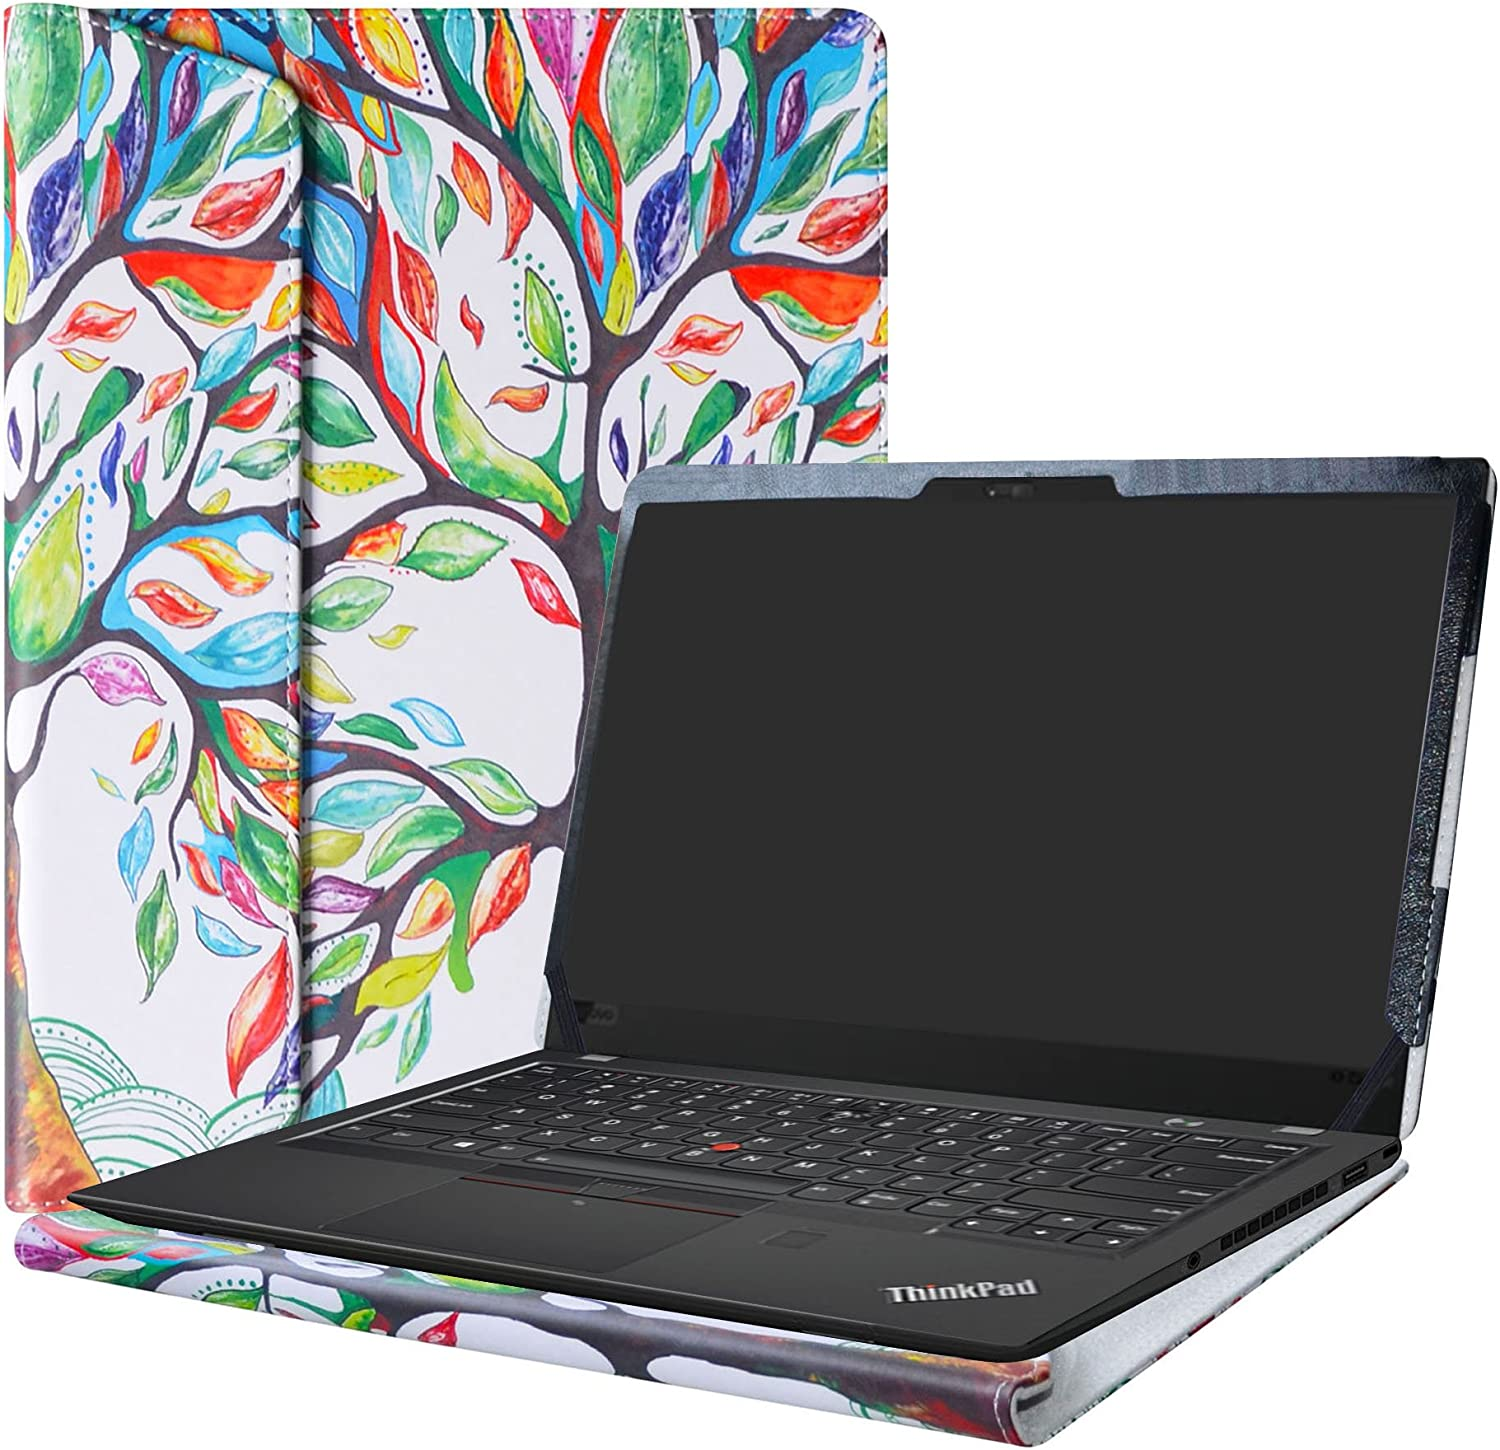 "Alapmk Protective Case Cover For 14"" Lenovo Thinkpad X1 Carbon 7th Gen/6th Gen/5th Gen & ThinkPad X1 Yoga 4th gen Laptop(Note:Not fit Thinkpad X1 Carbon 1st Gen/2nd Gen/3rd Gen/4th Gen),Love Tree"